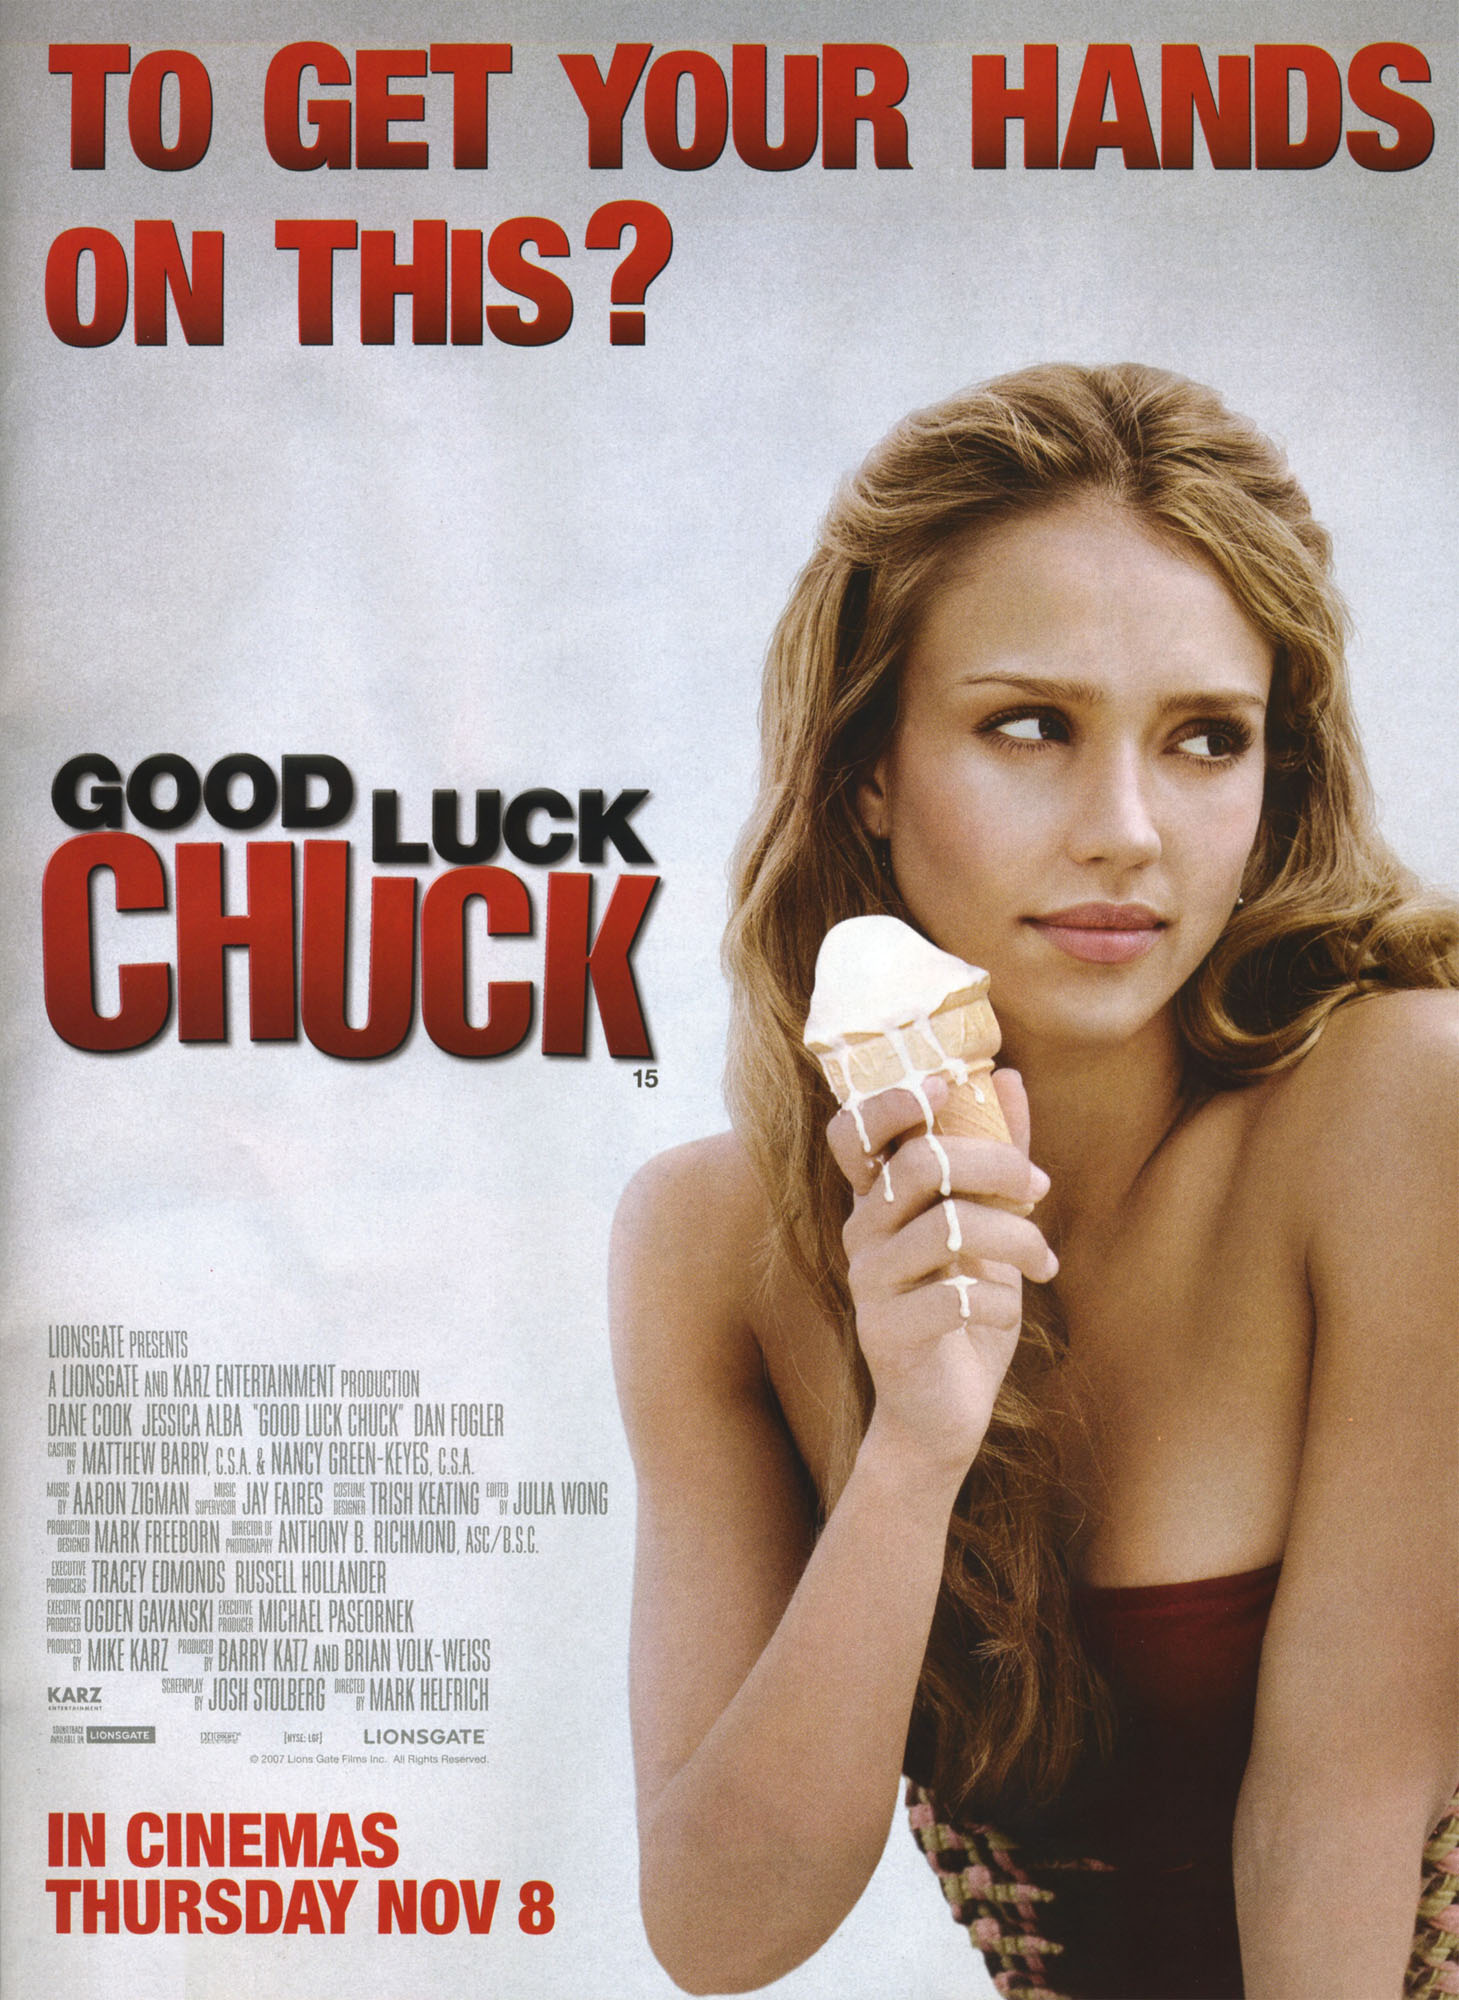 02110_Good_Luck_Chuck_Ad_122_761lo.jpg